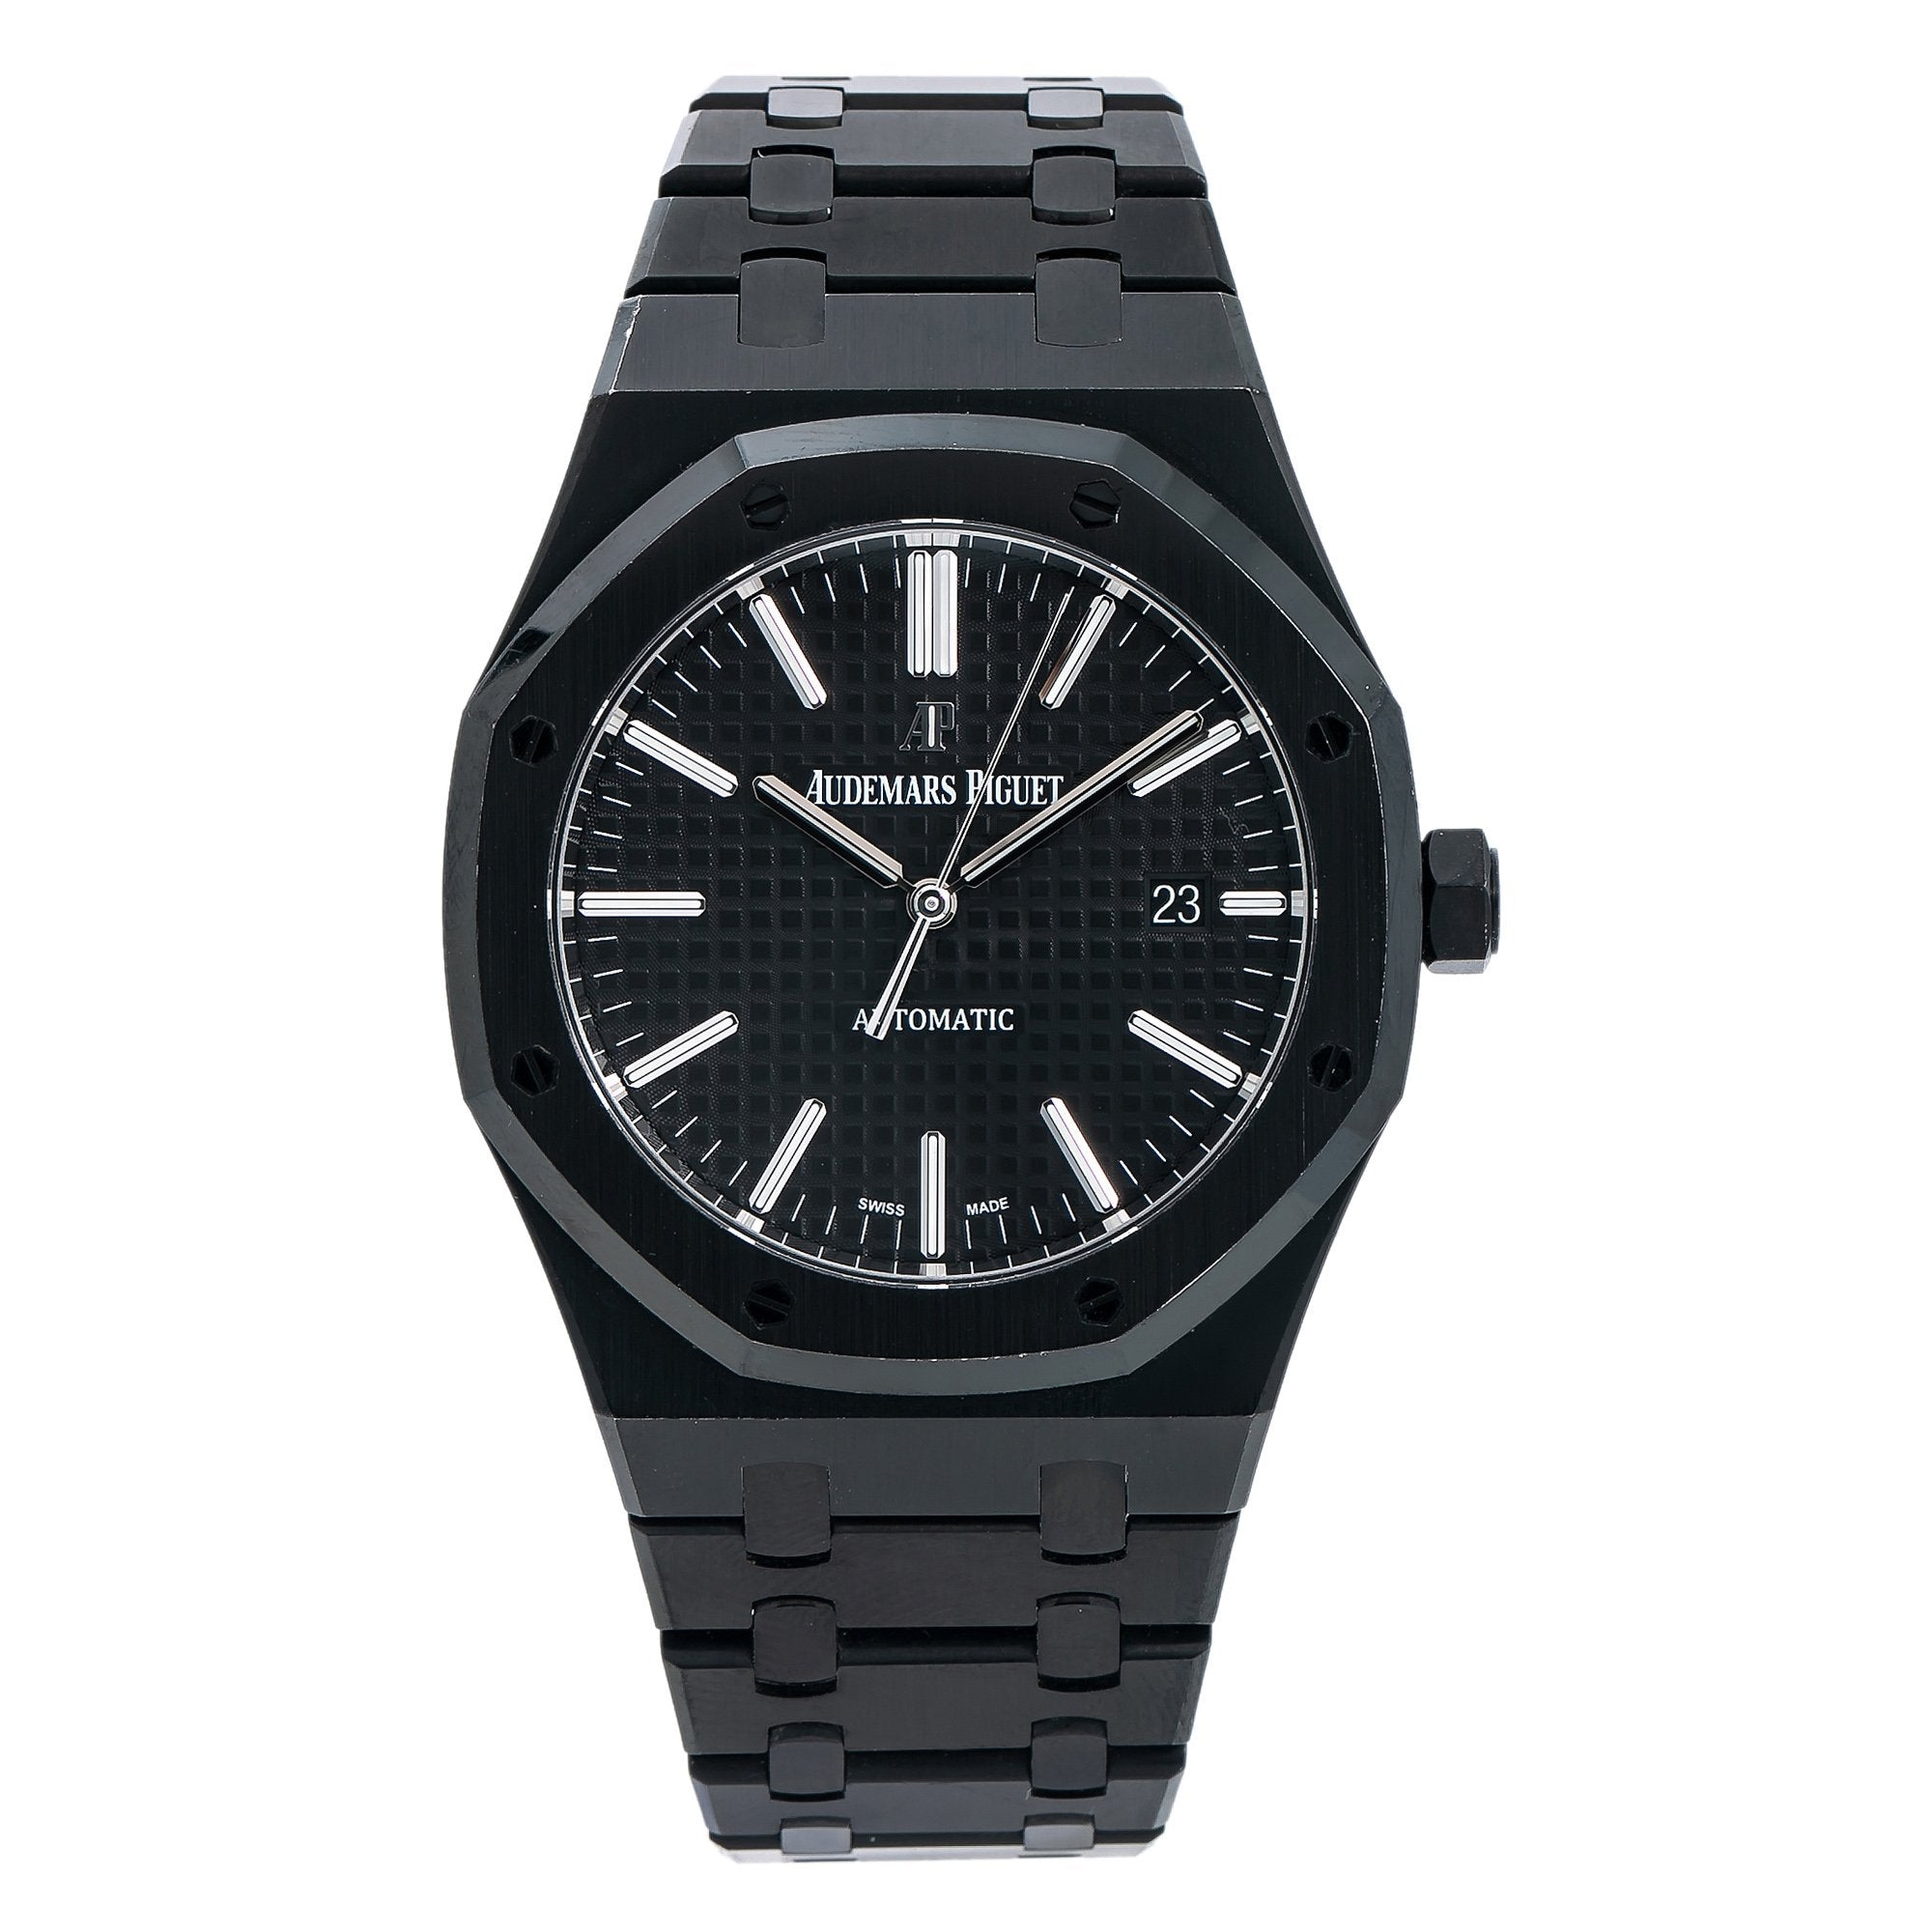 Audemars Piguet Royal Oak Selfwinding 15400ST 41MM Black Dial With Stainless Steel Bracelet